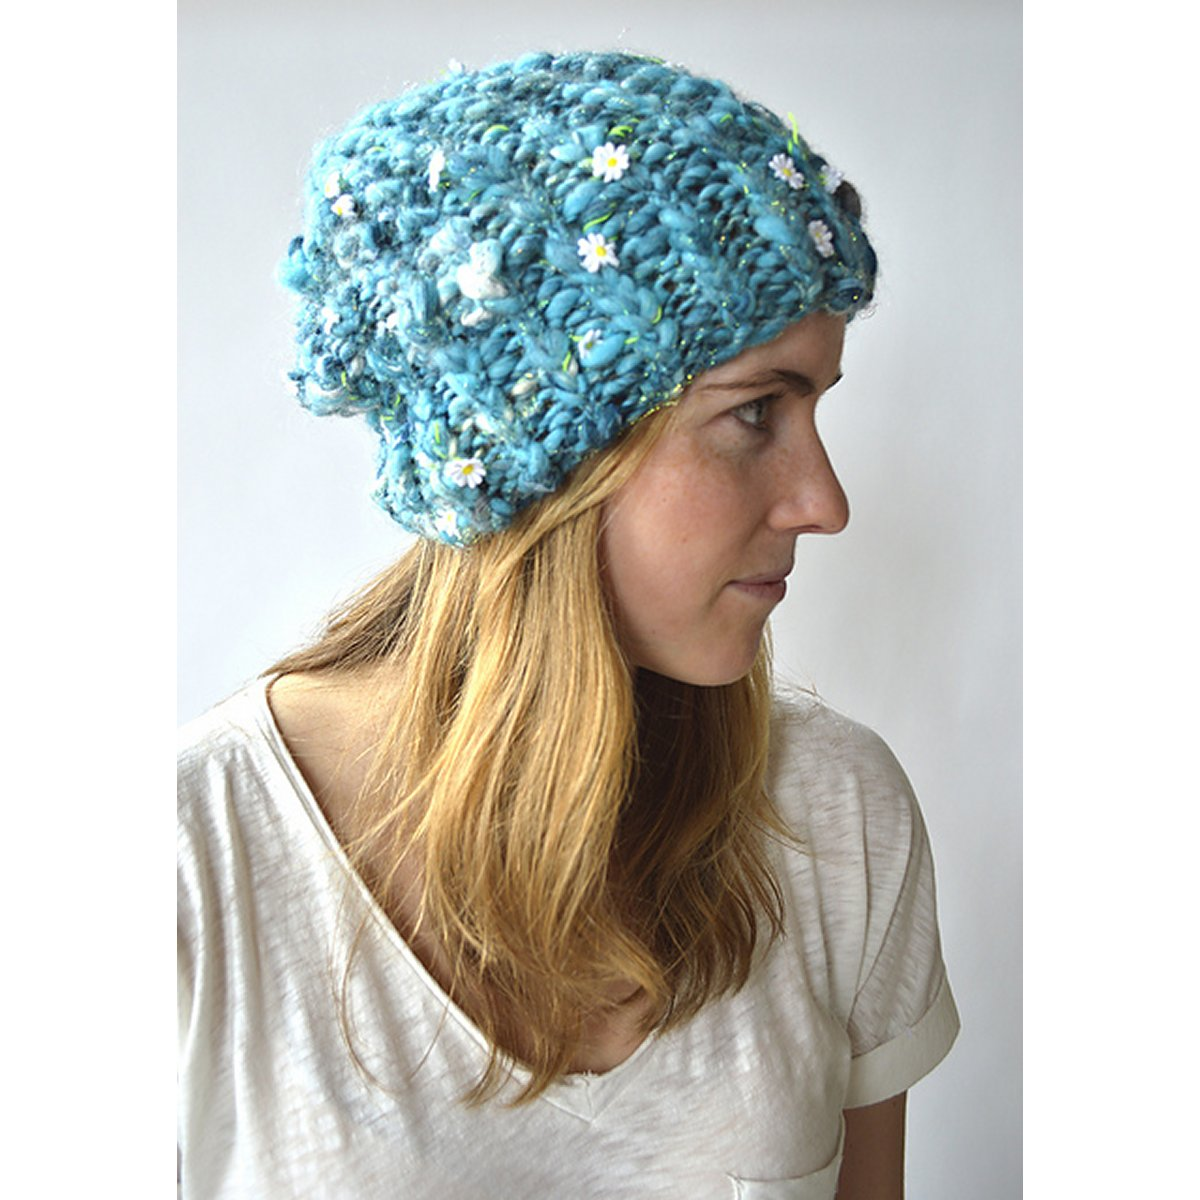 bb1f5b6f62e Knit Collage Daisy Chain or Swirl Ribby Slouch Beanie Kit - Hats and Gloves